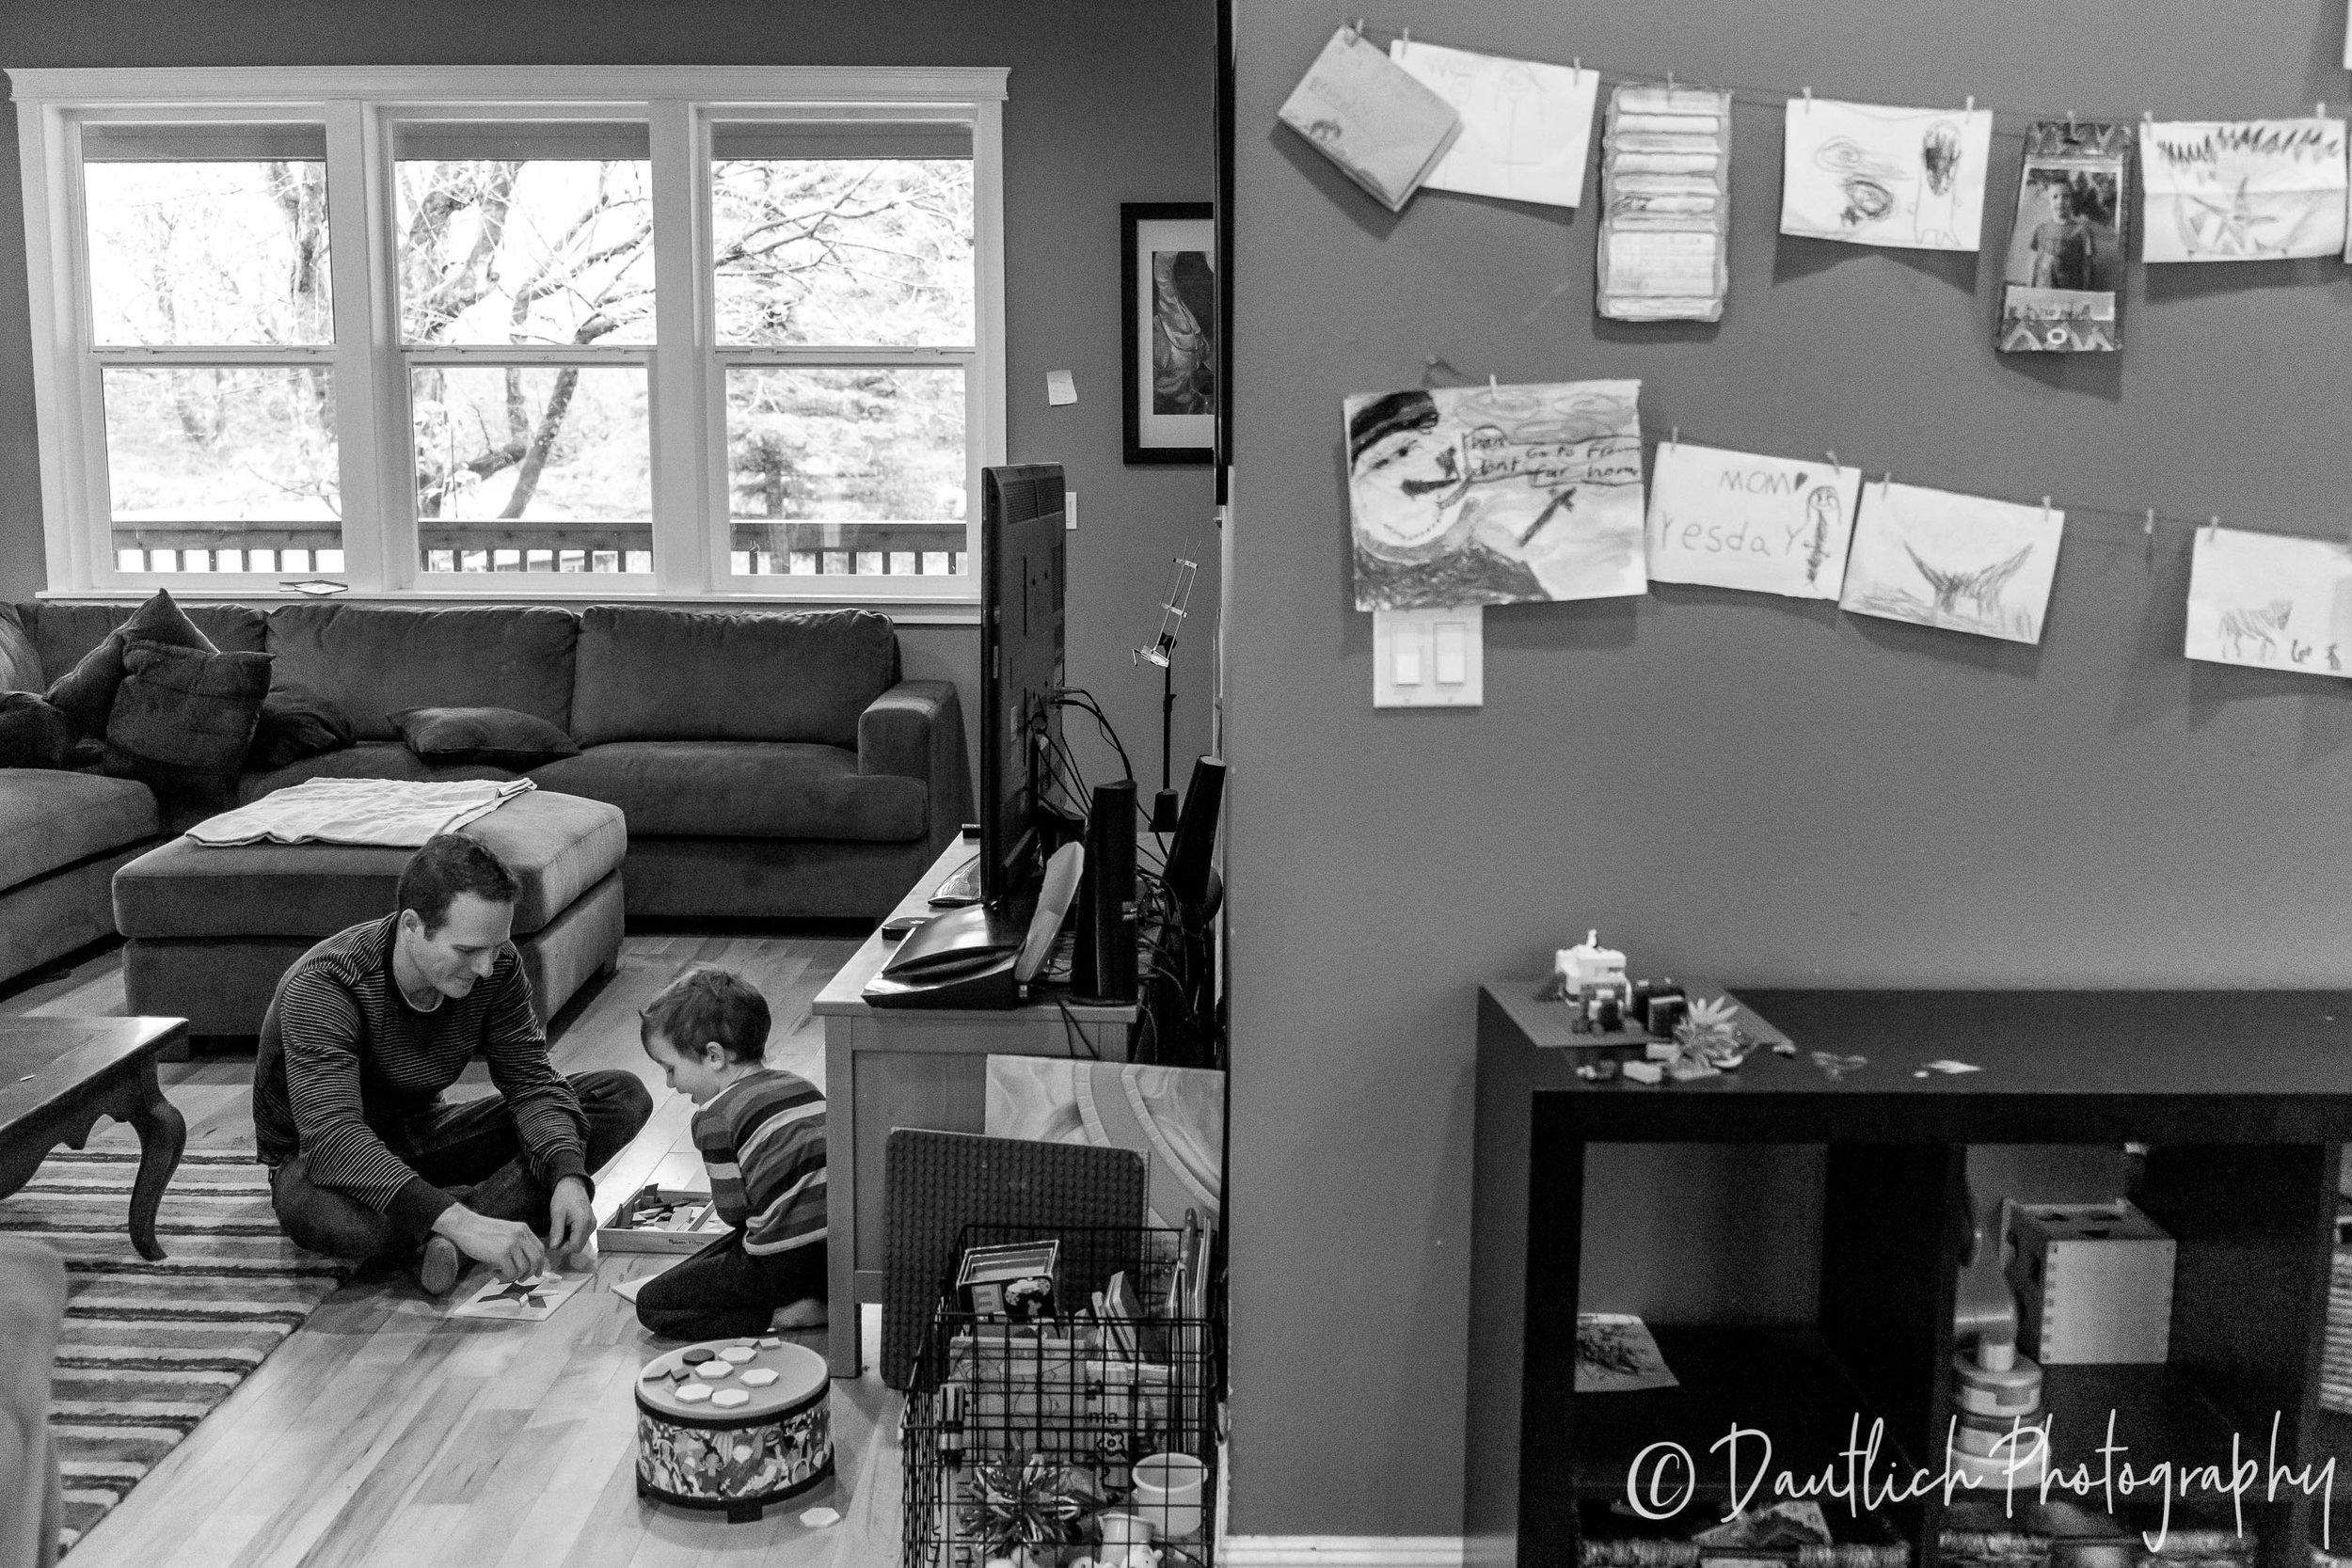 dautlich_photography_in_home_session_myths-3.jpg